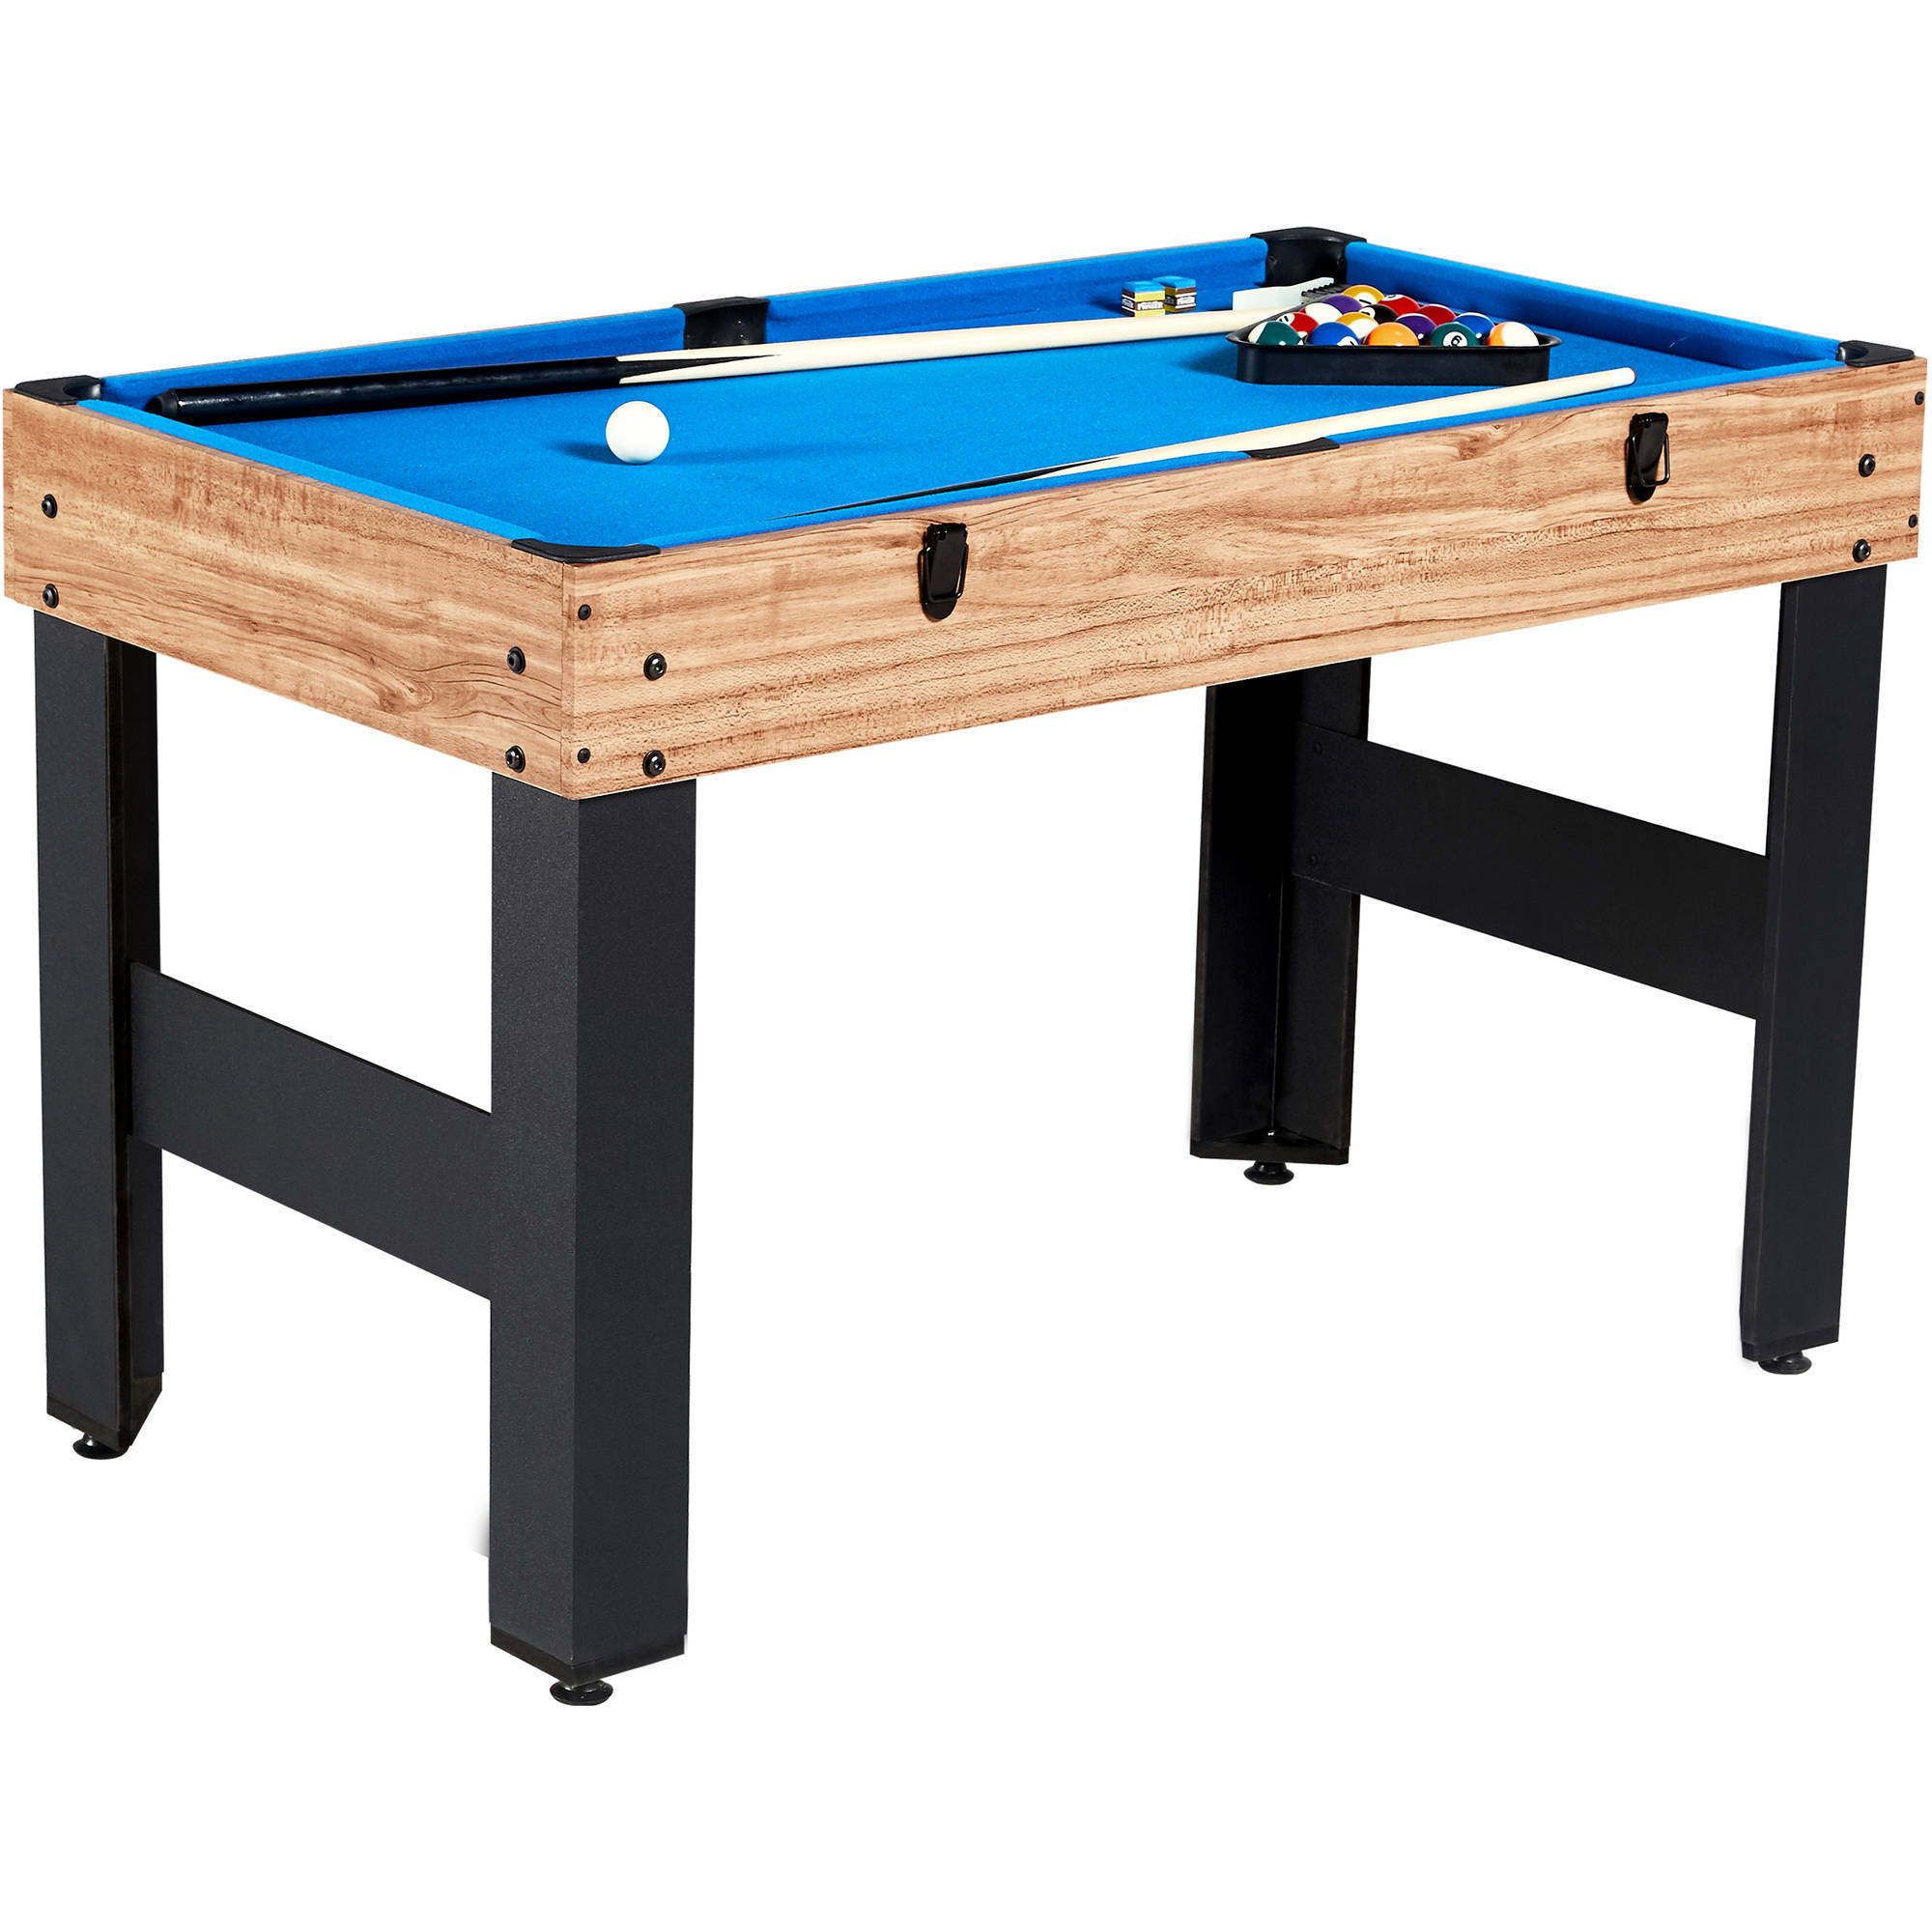 Good MD Sports 48 Inch 3 In 1 Combo Game Table, Billiards, Slide Hockey And  Soccer   Walmart.com